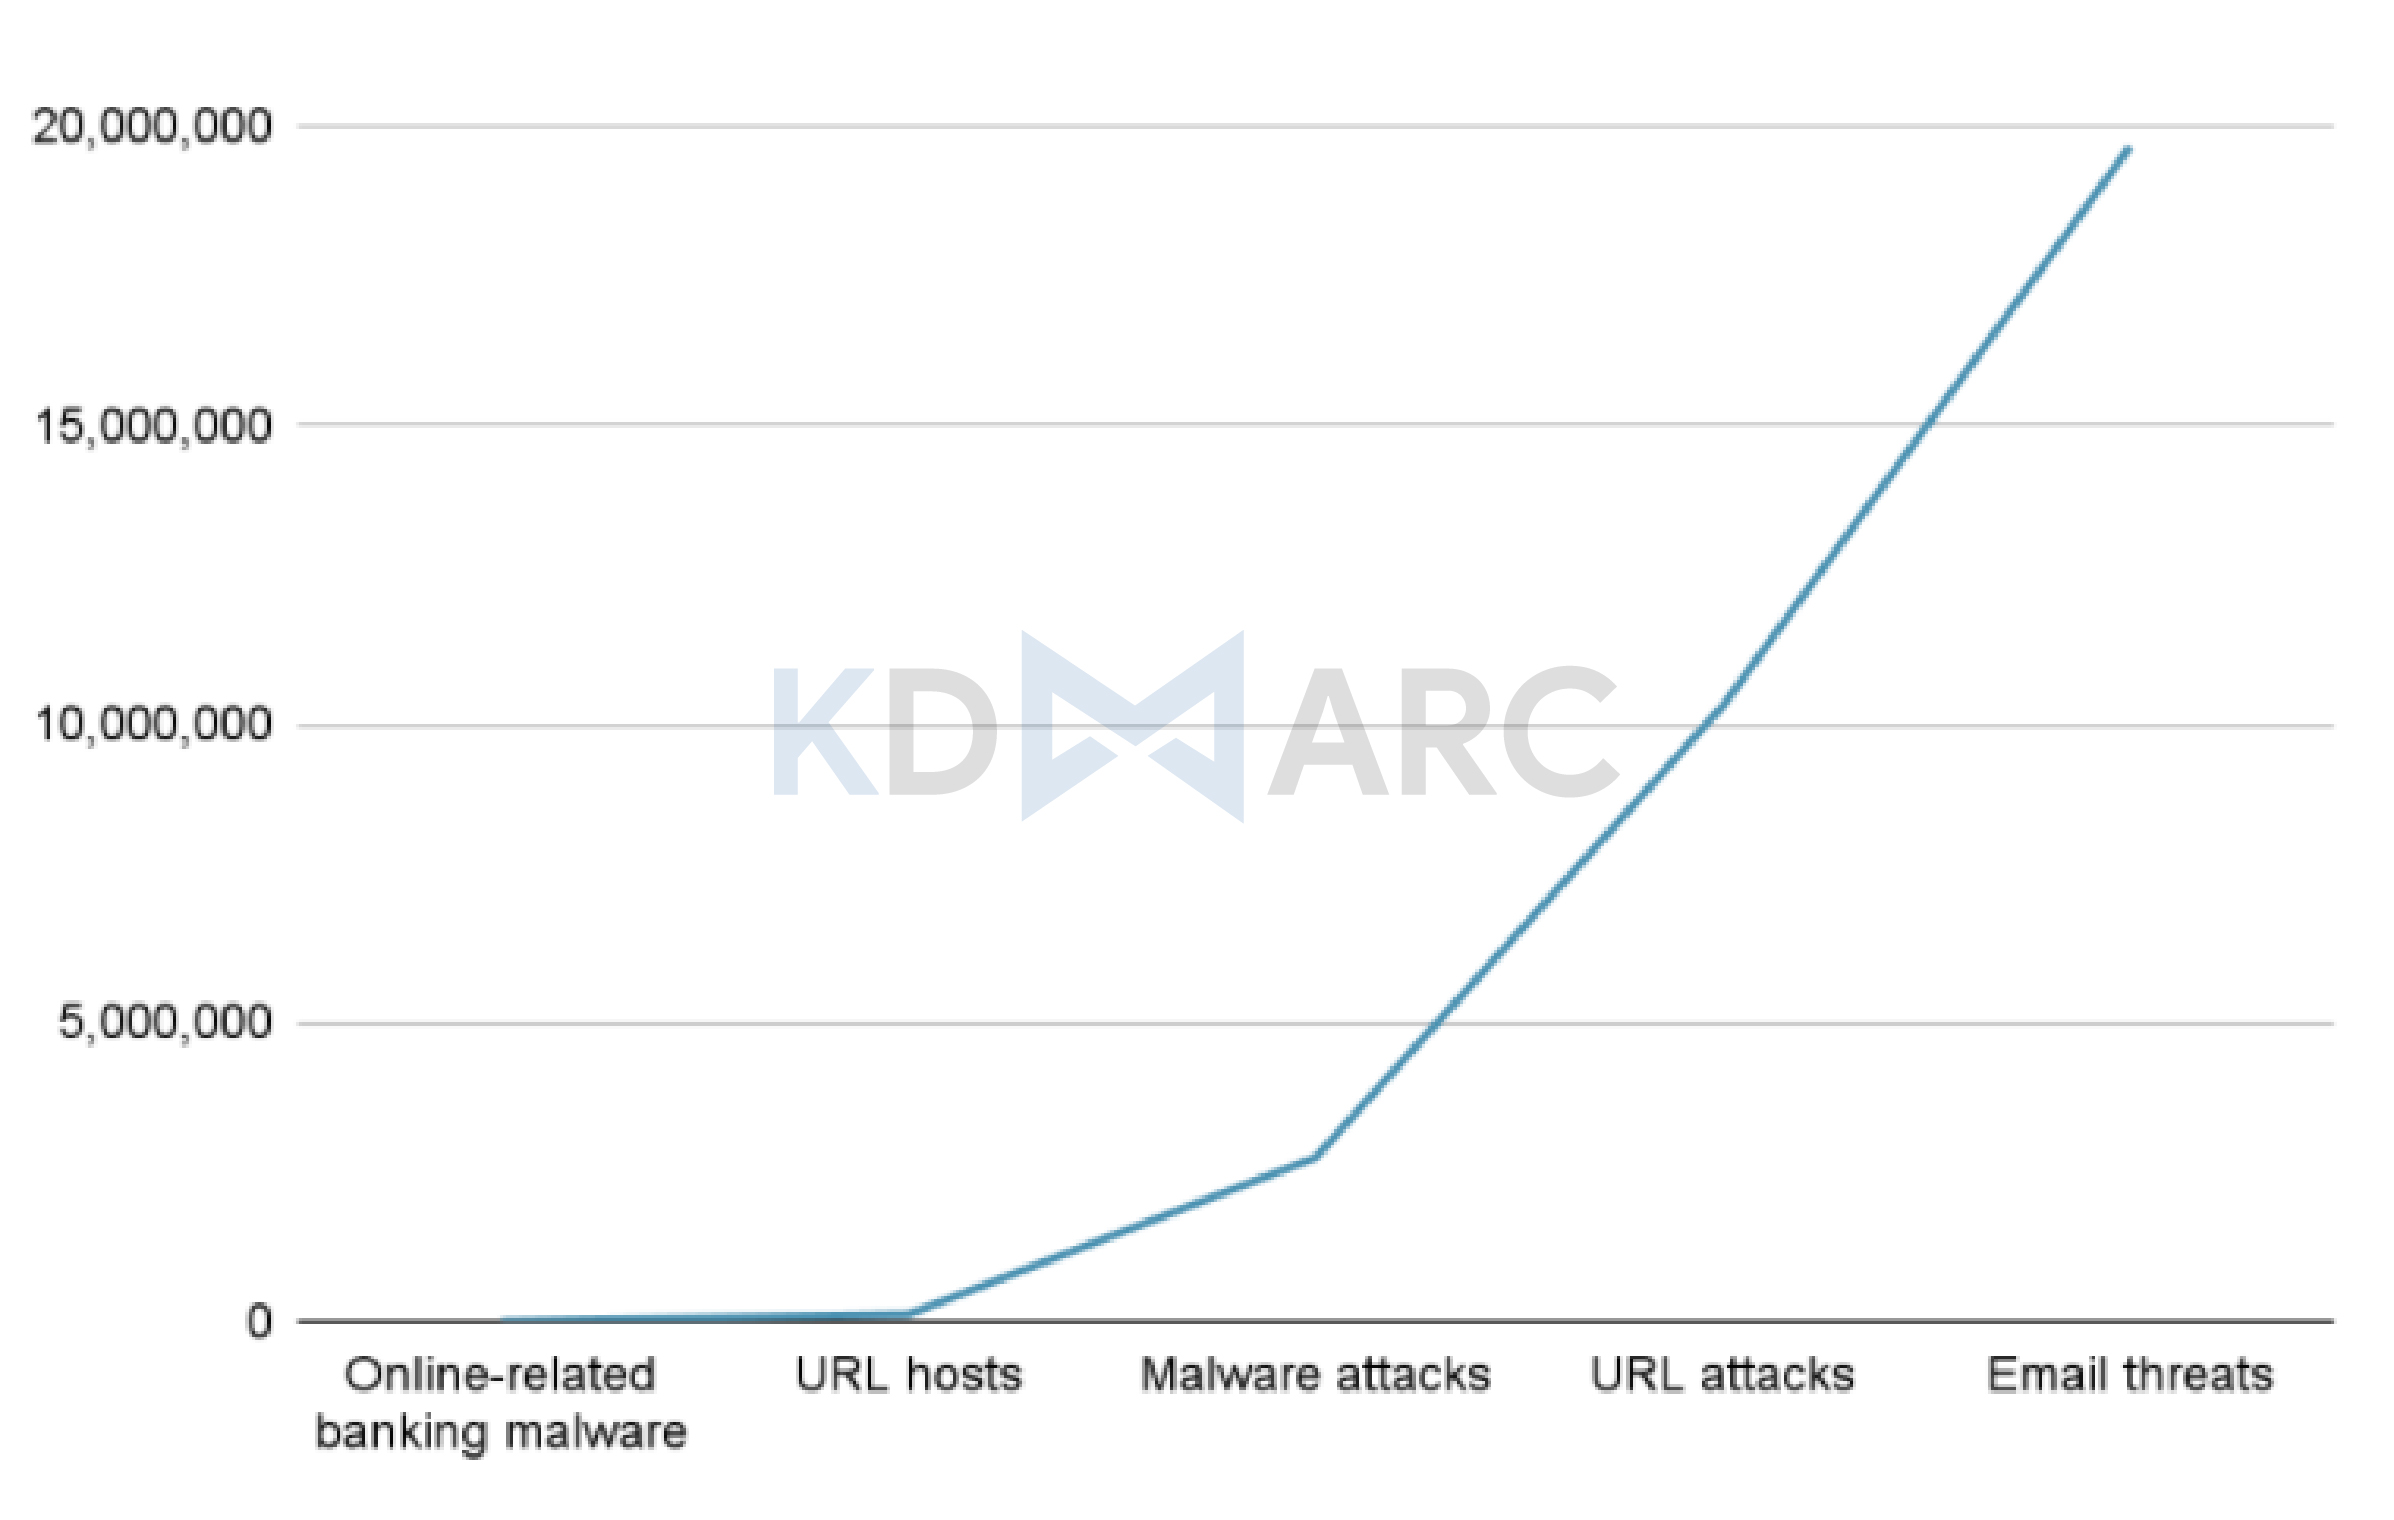 Graph representation of the cyber threats that are blocked in the UAE